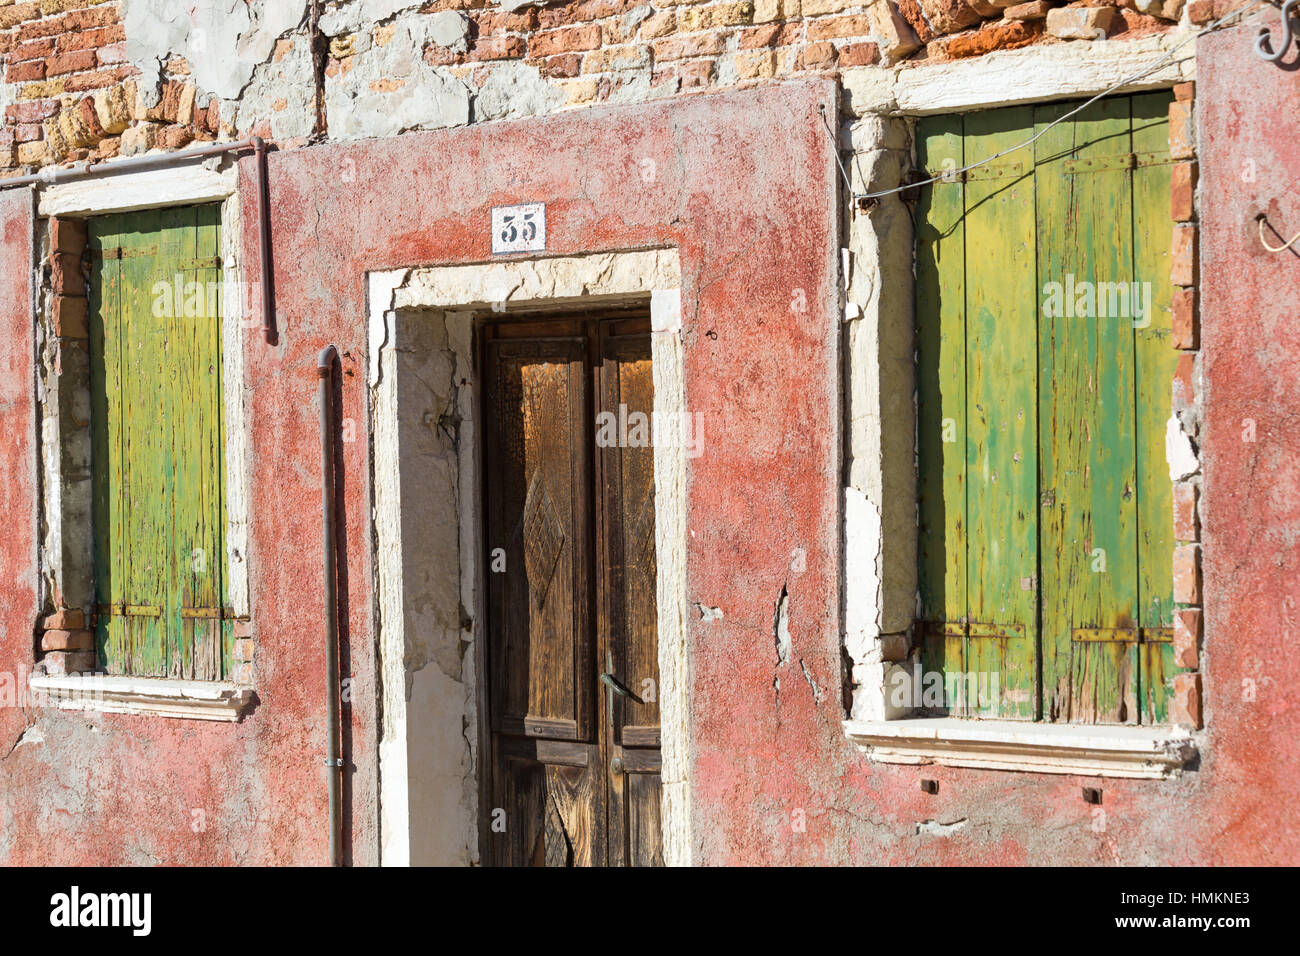 Building in need of some TLC at Burano, Venice, Italy in January - Stock Image